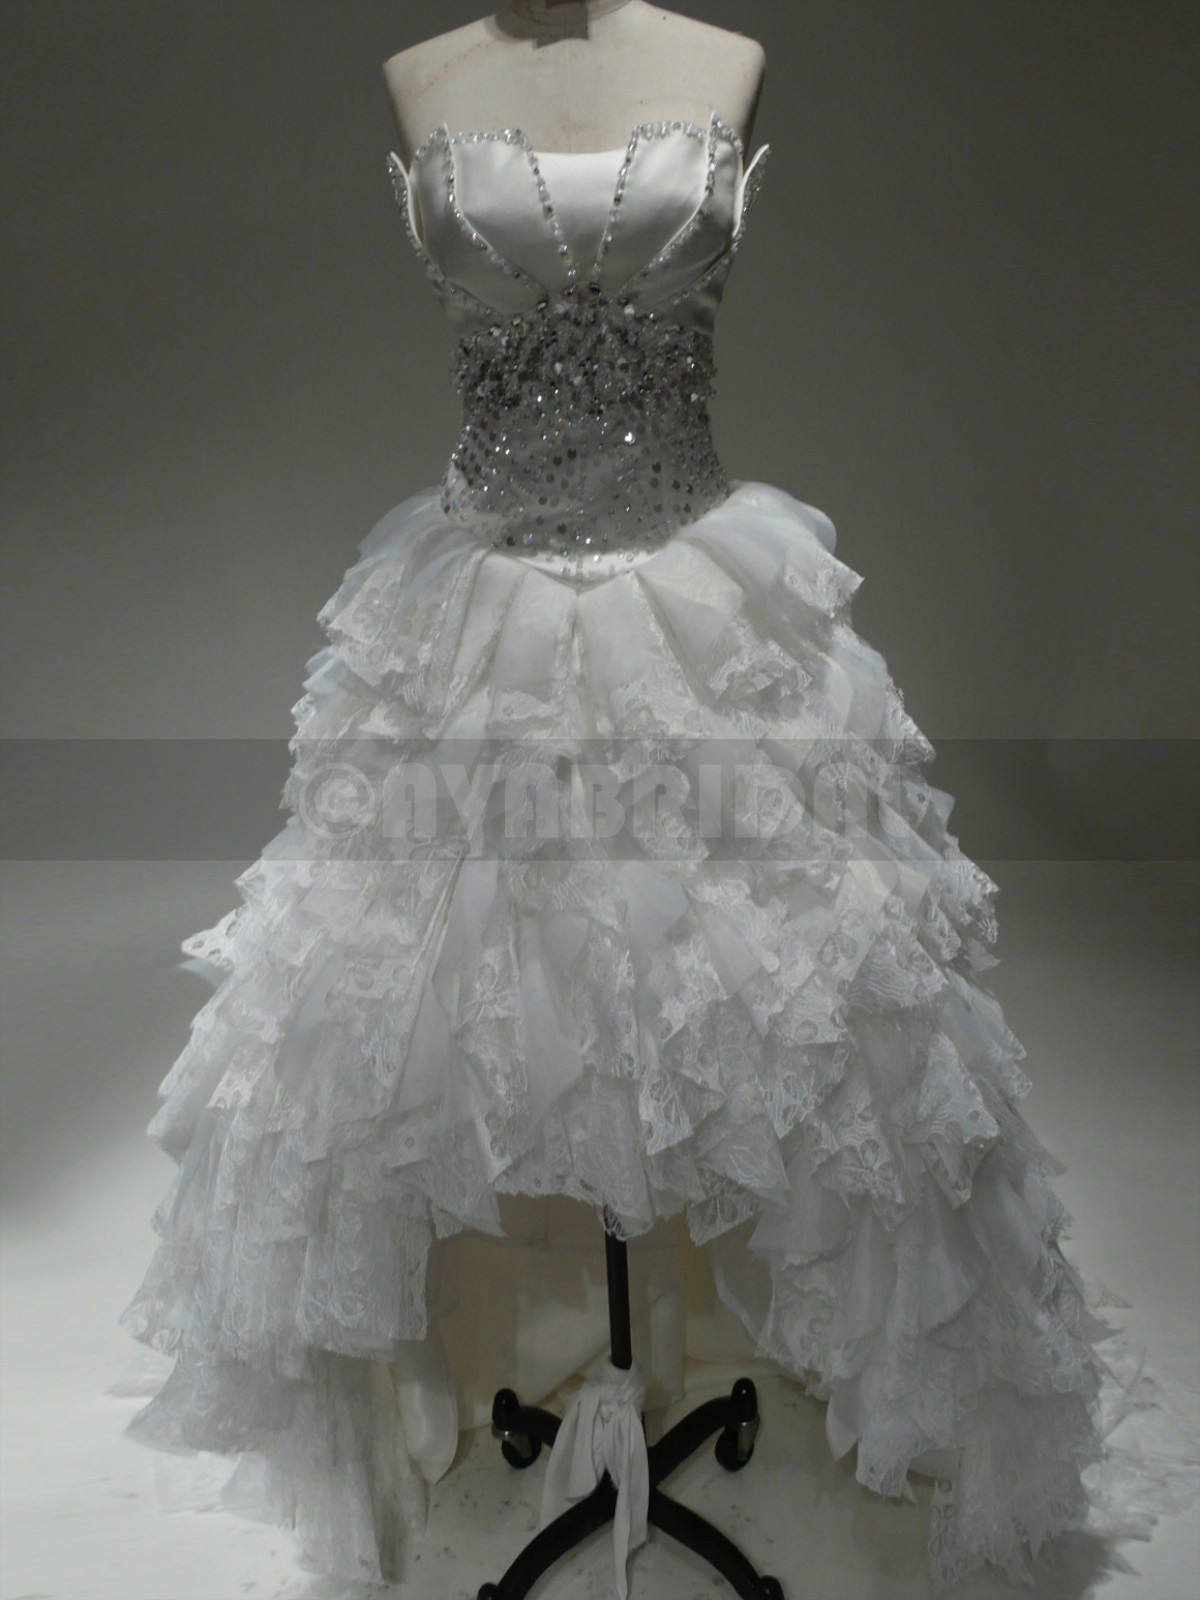 Chic Ball Gown - Paula - Front